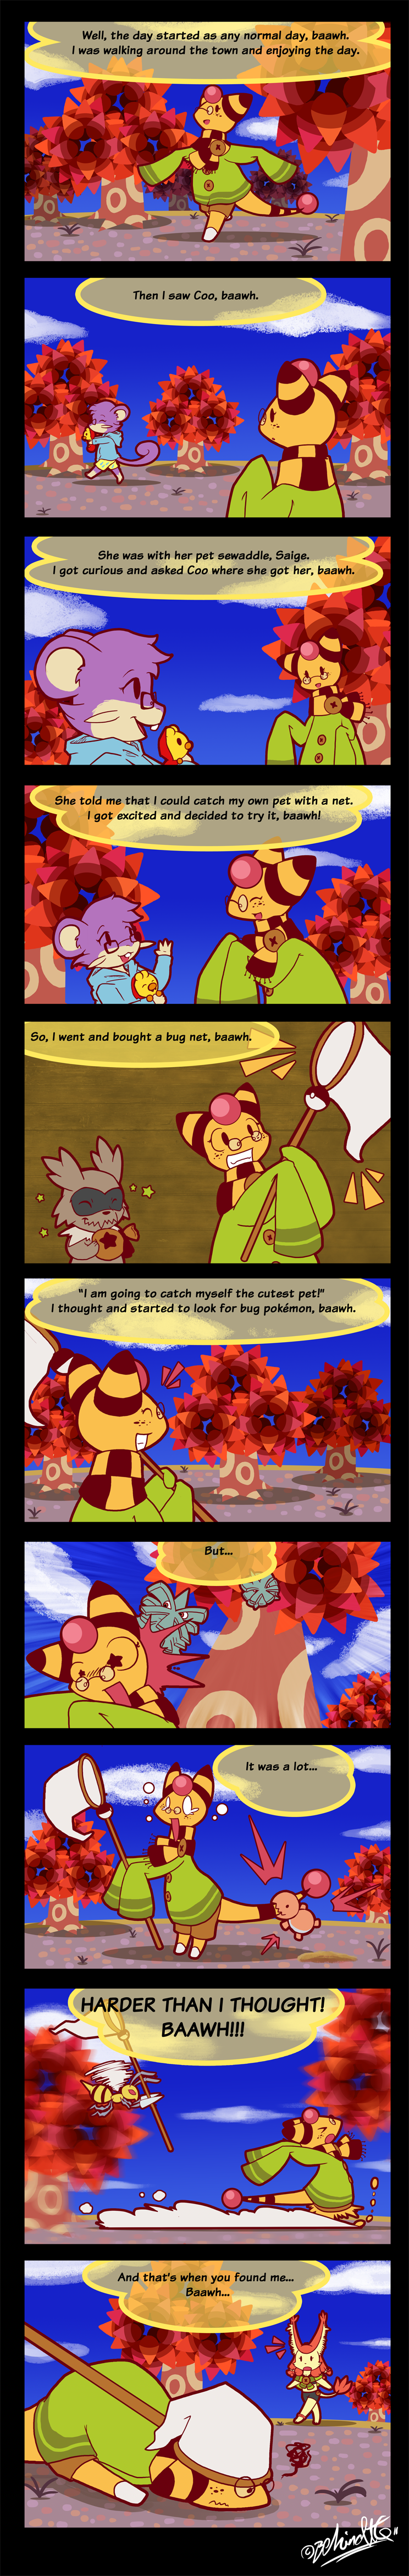 Bug Off - Part 1 by TamarinFrog